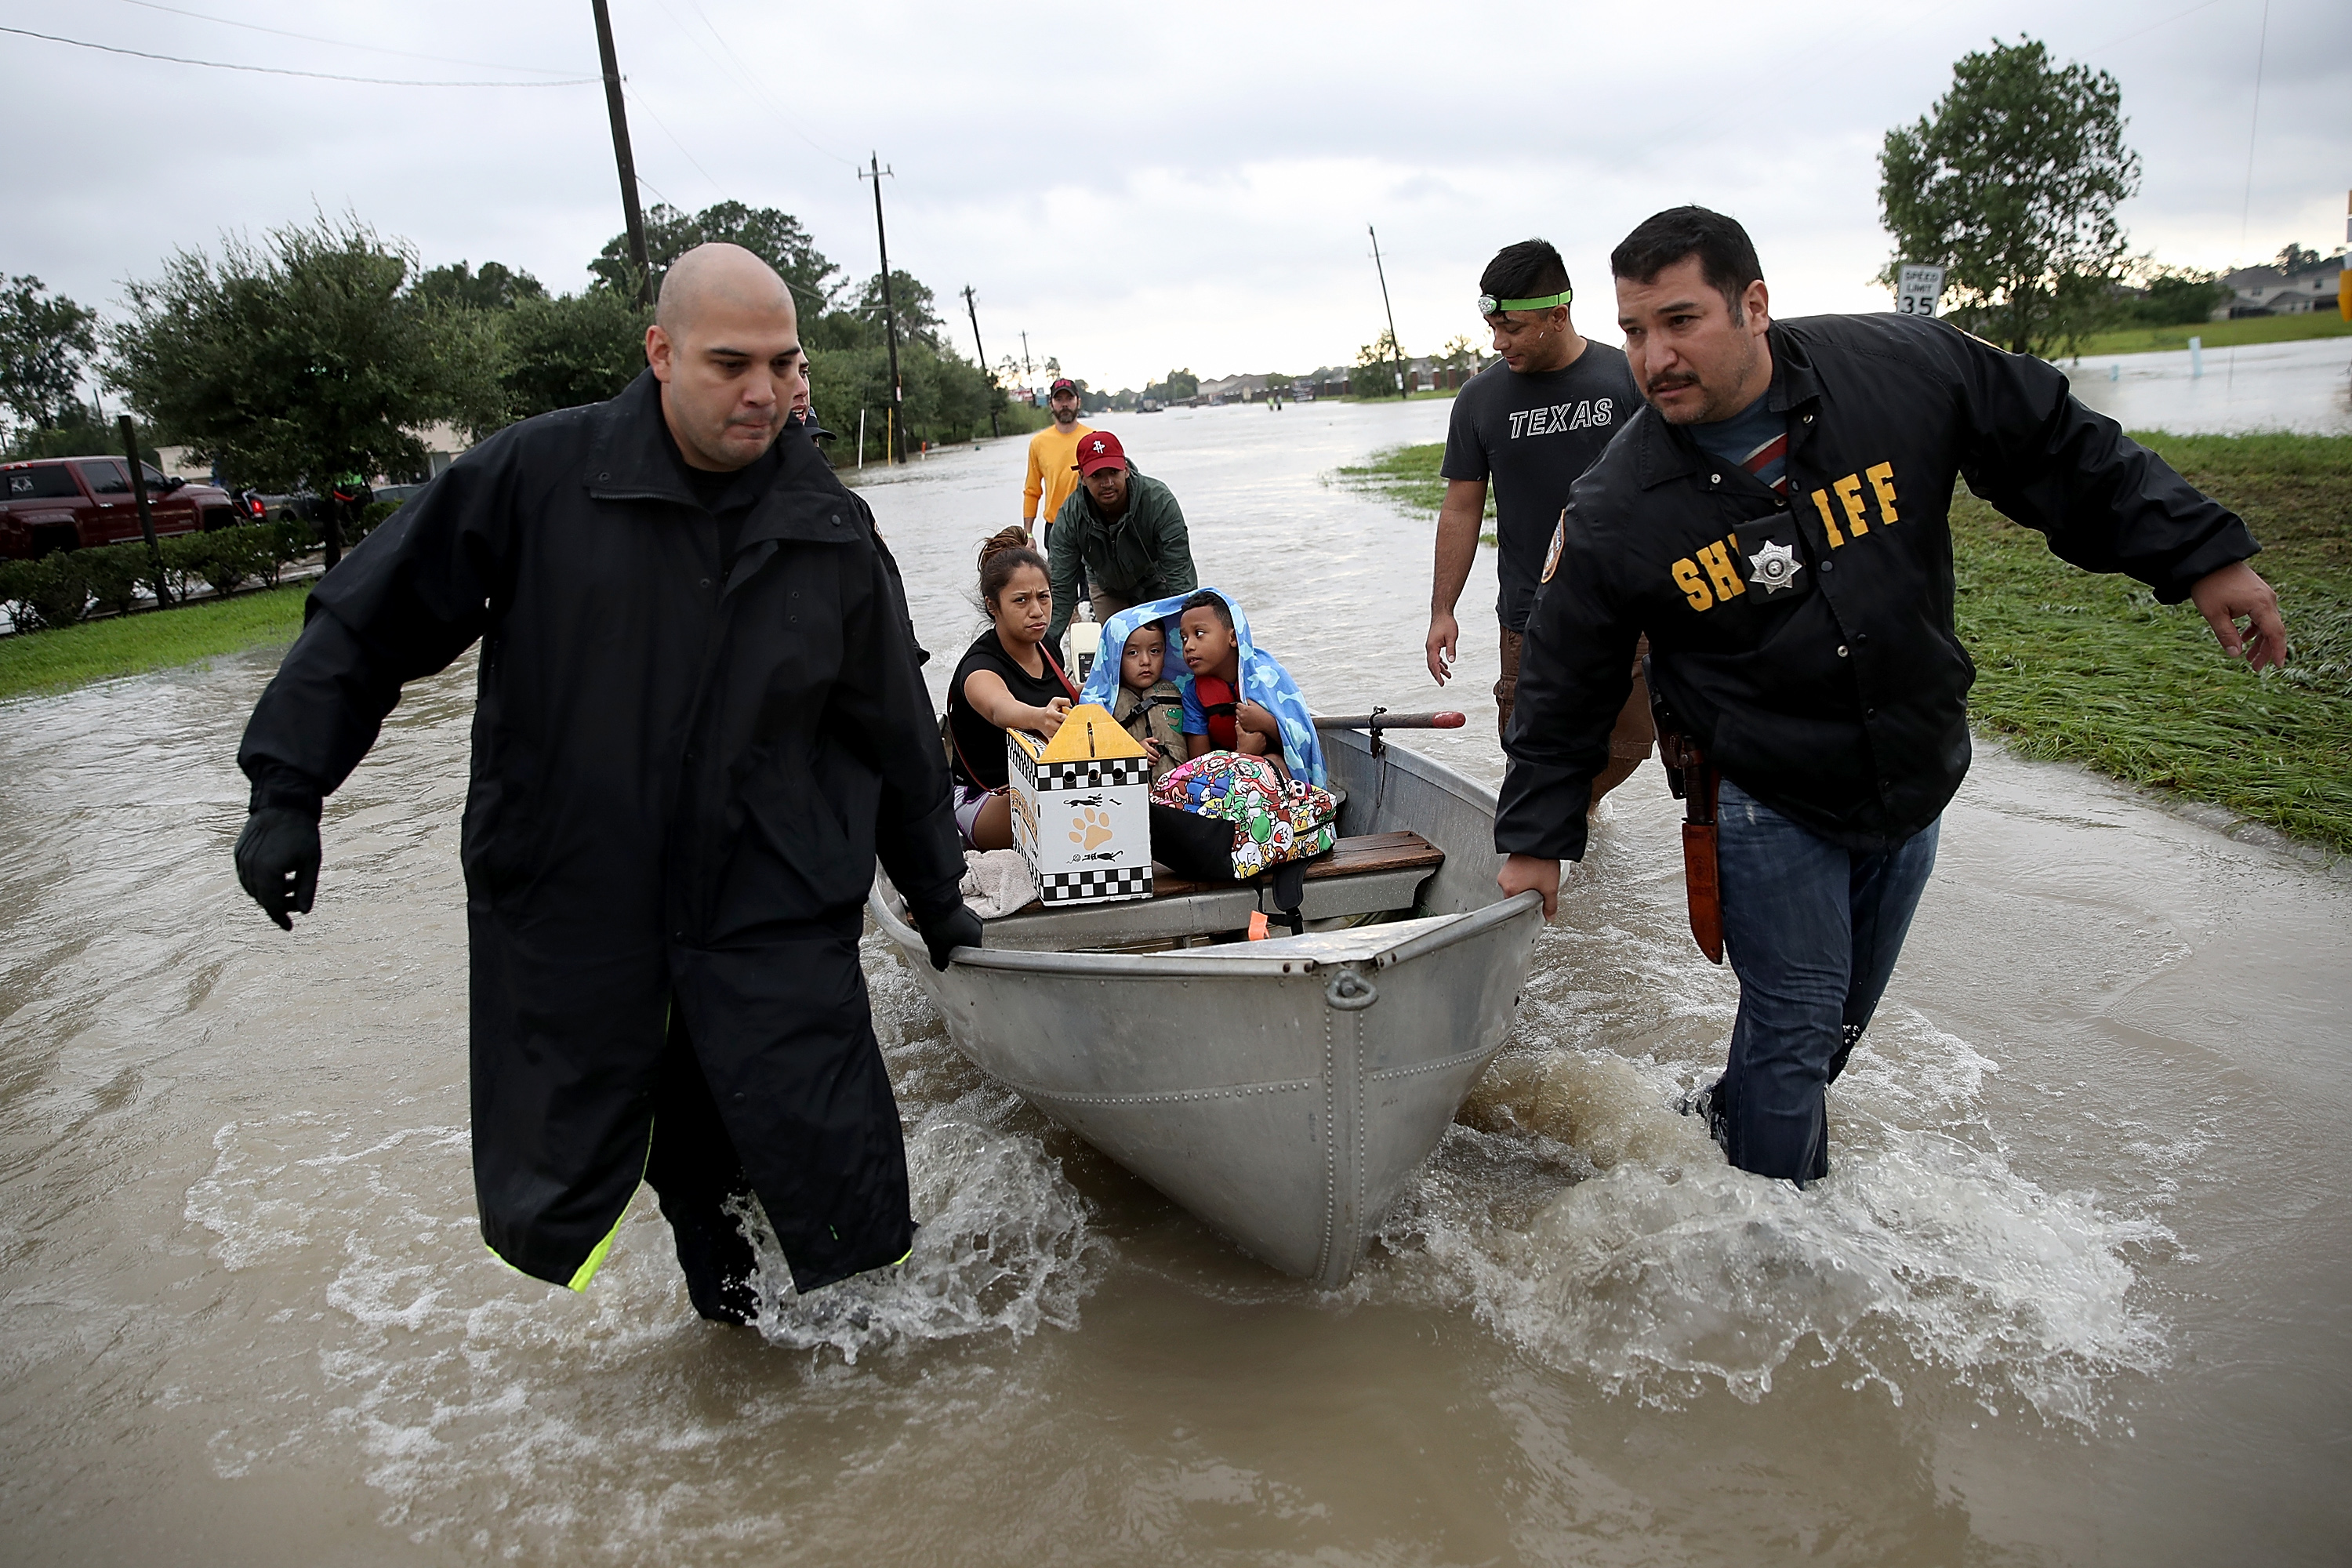 The Tellez family is evacuated from their home after severe flooding following Hurricane Harvey in north Houston August 29, 2017 in Houston, Texas.